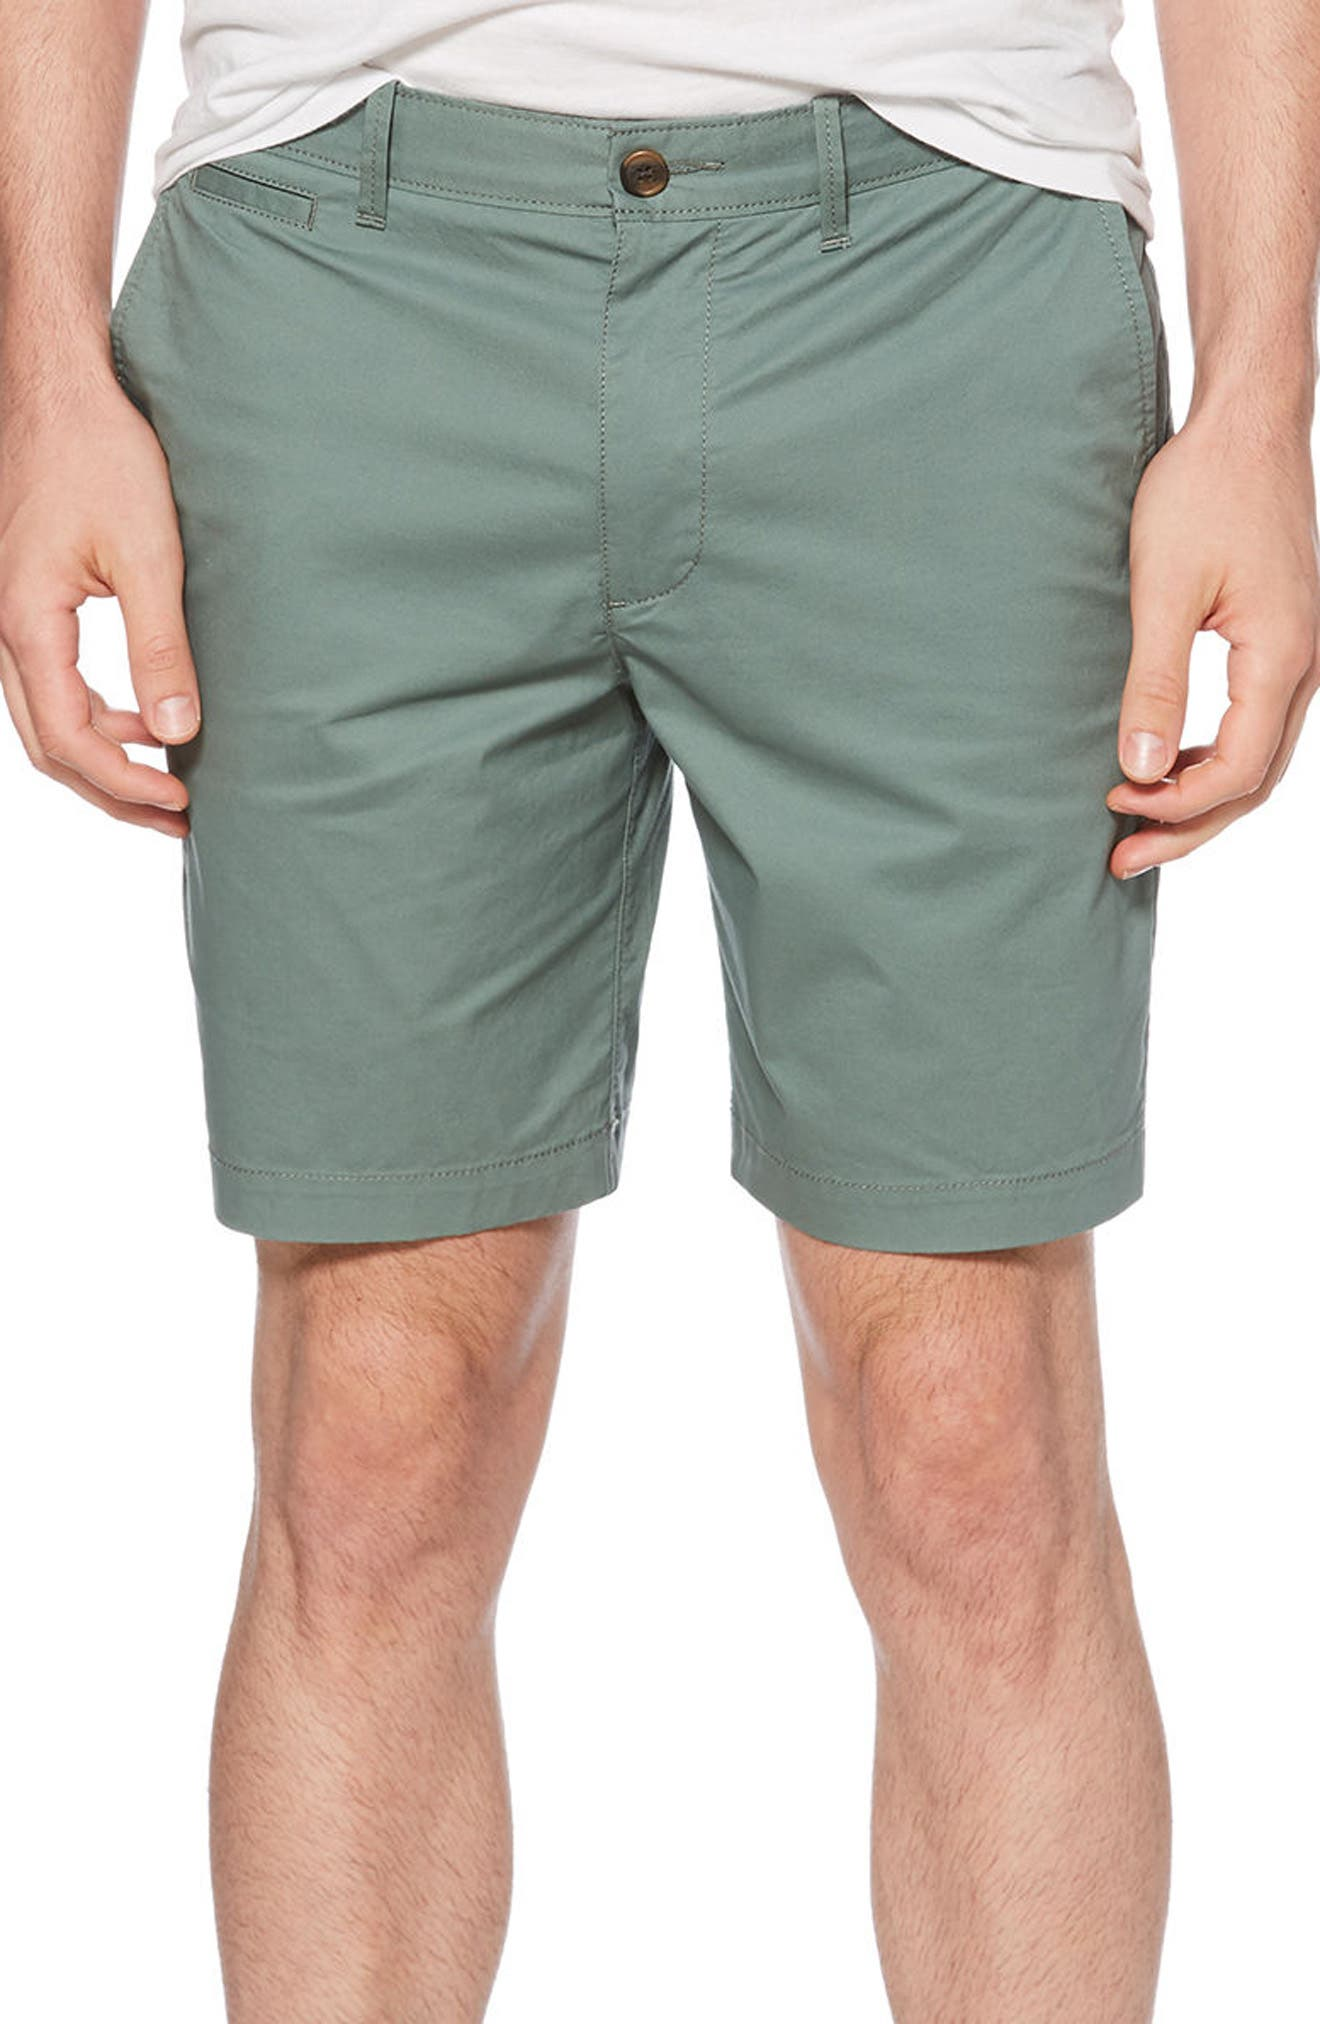 P55 Shorts,                         Main,                         color, 327